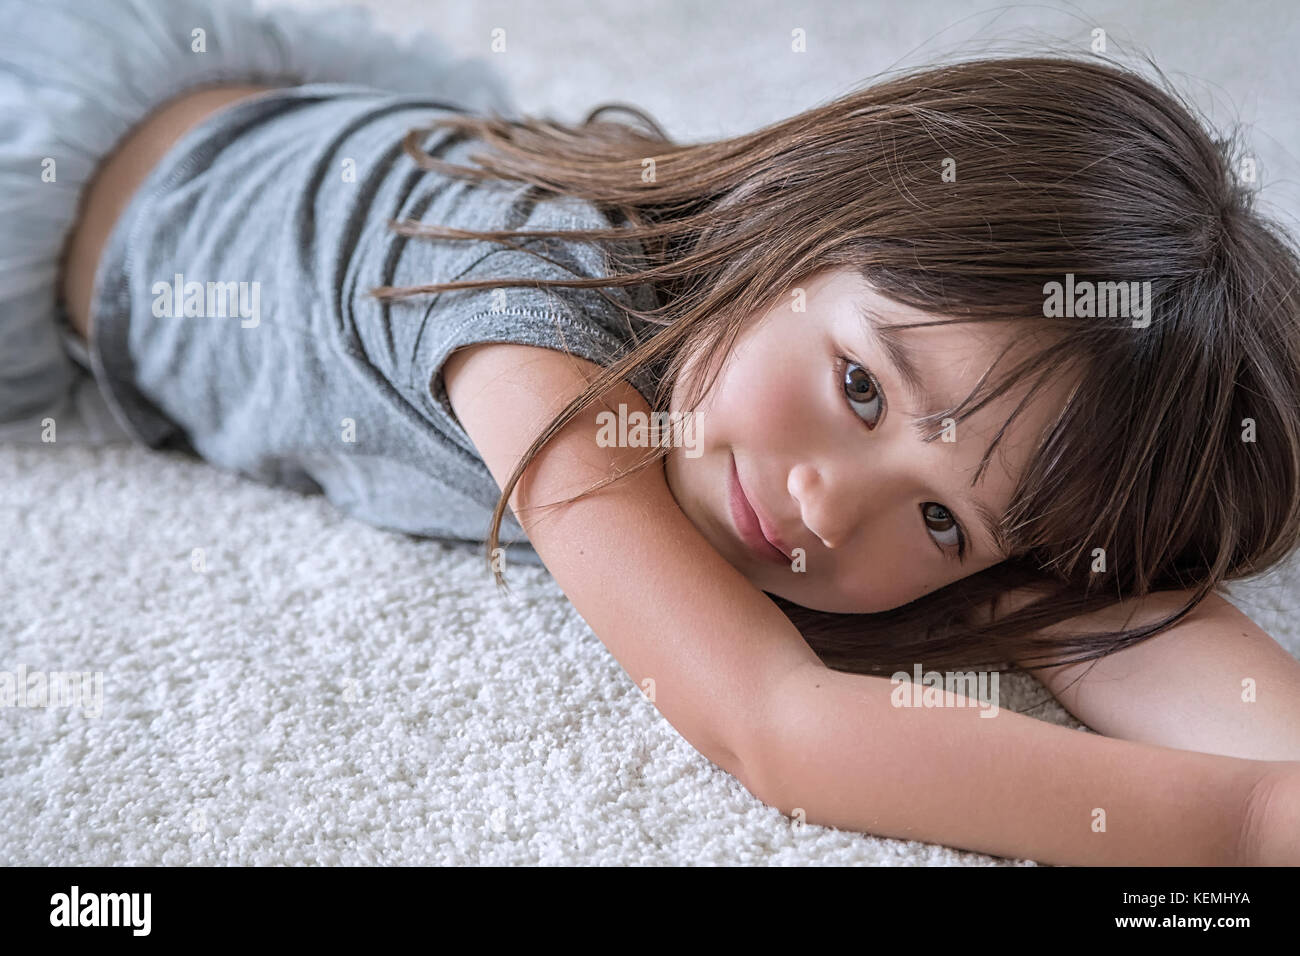 Five year old girl laying on the carpet in her room - Stock Image